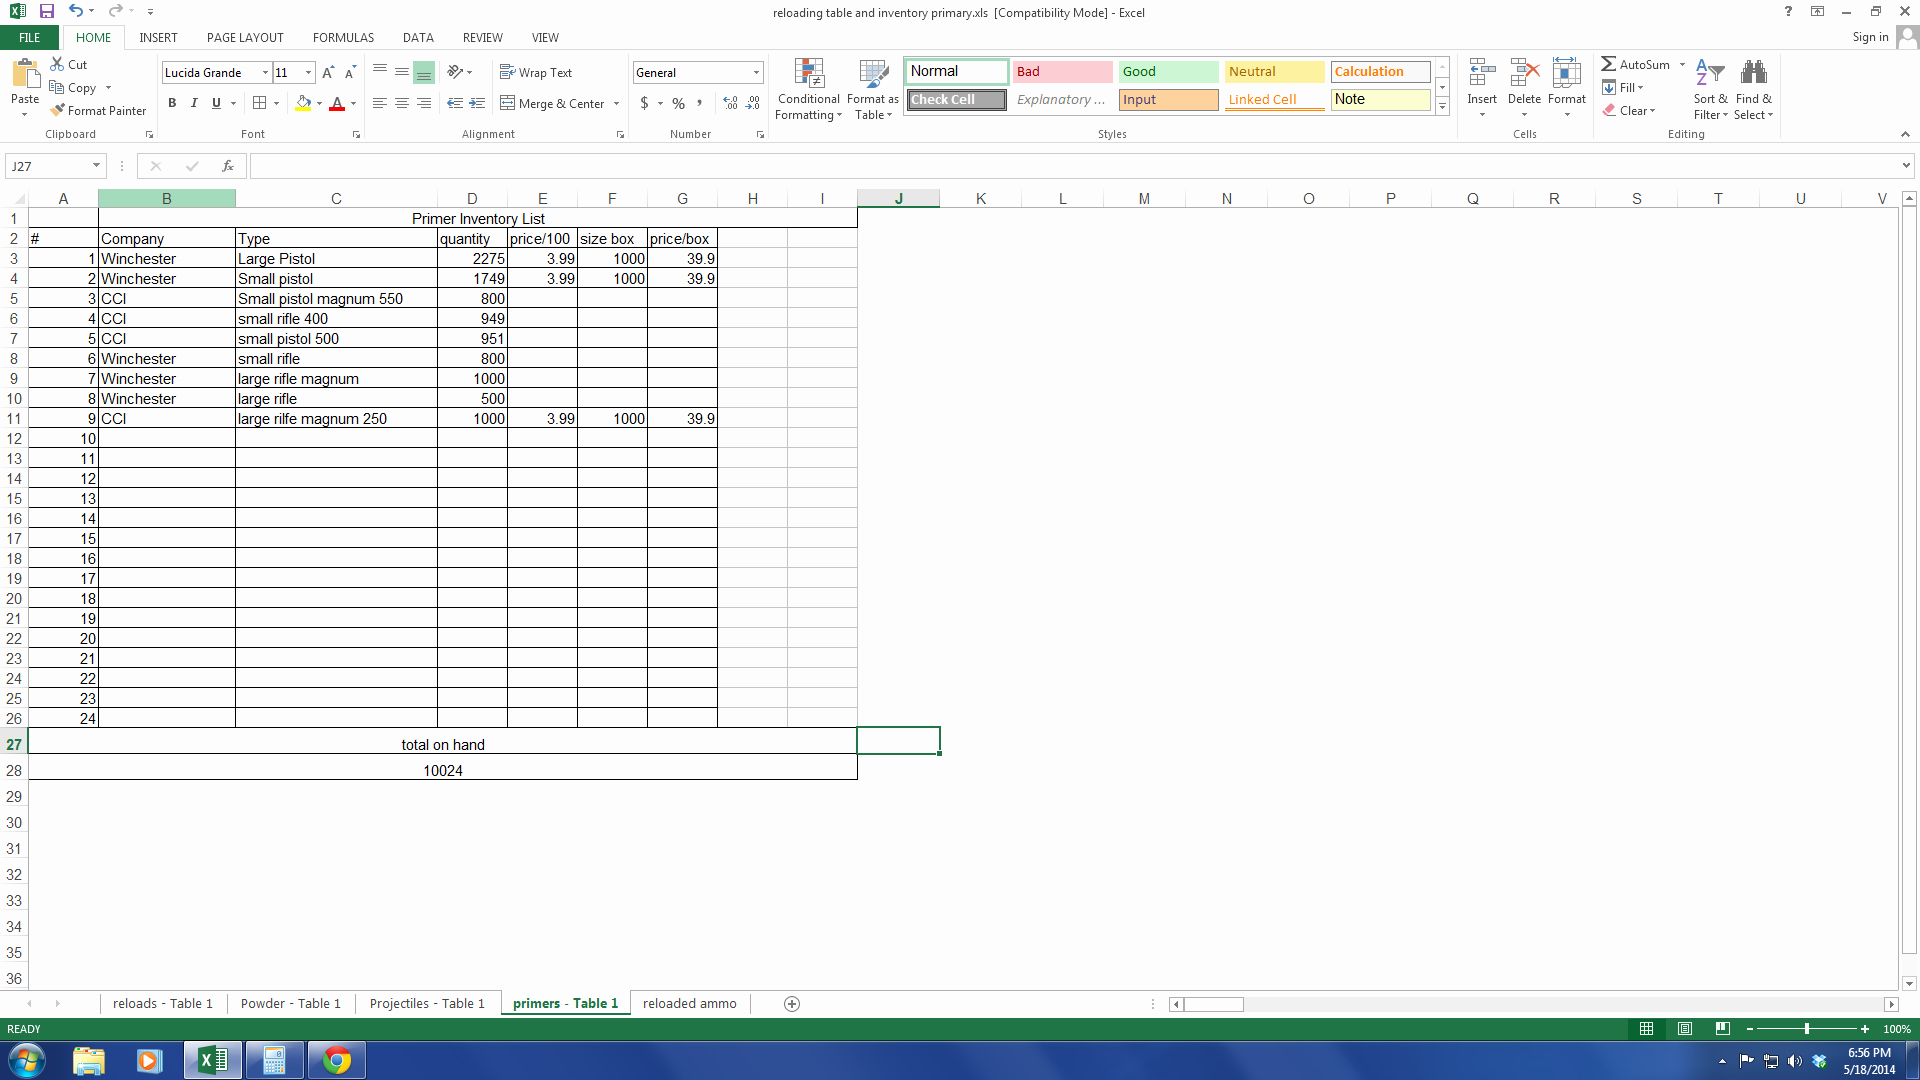 Excel Inventory Tracking Template Luxury Inventory Tracking with Excel Shooters forum